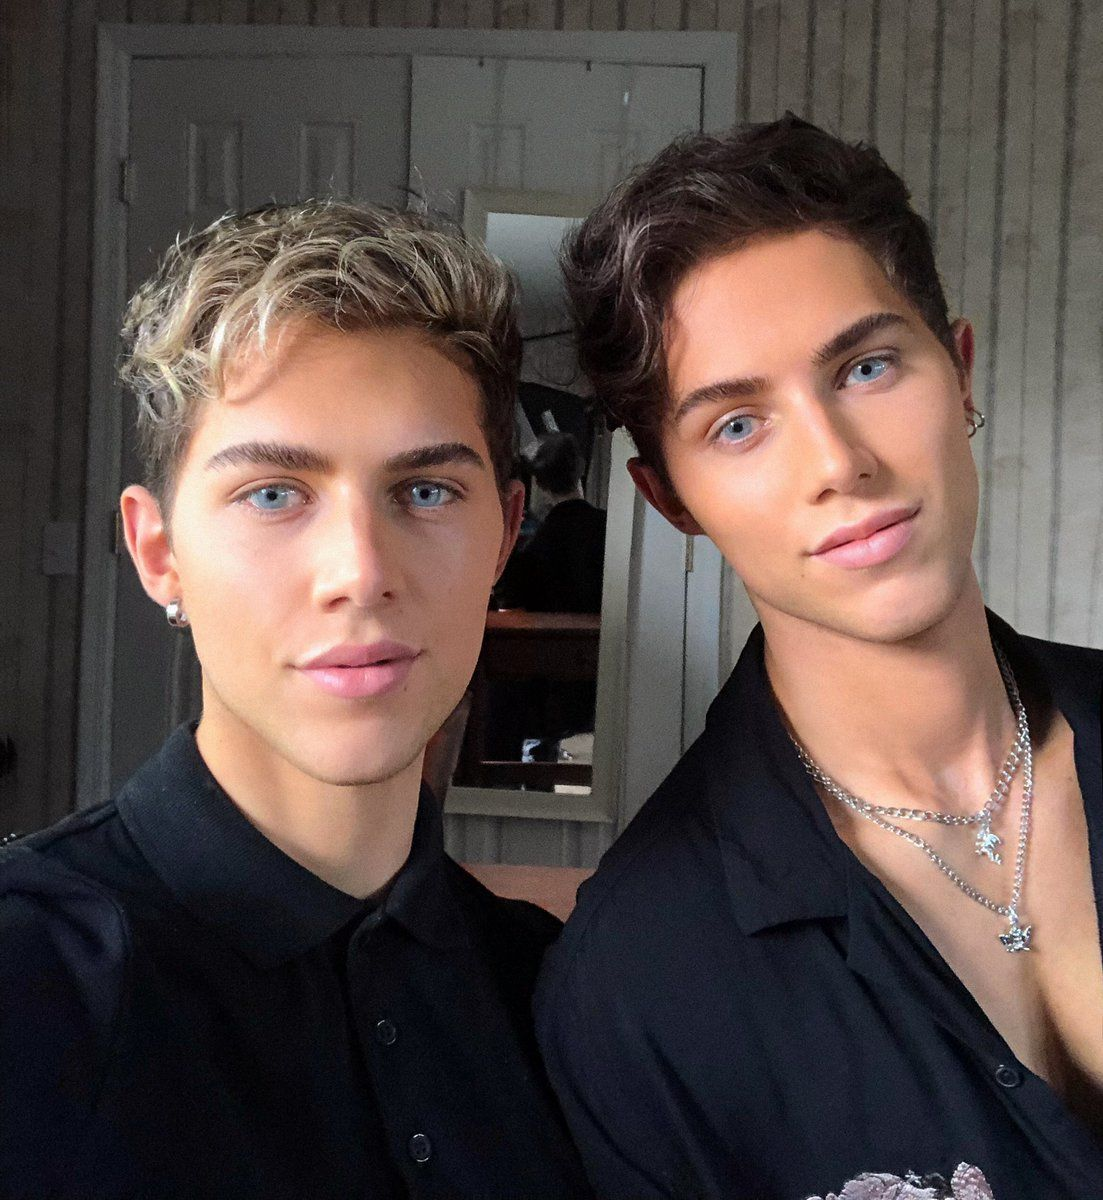 The Coyle Twins - MYFOLLOWS